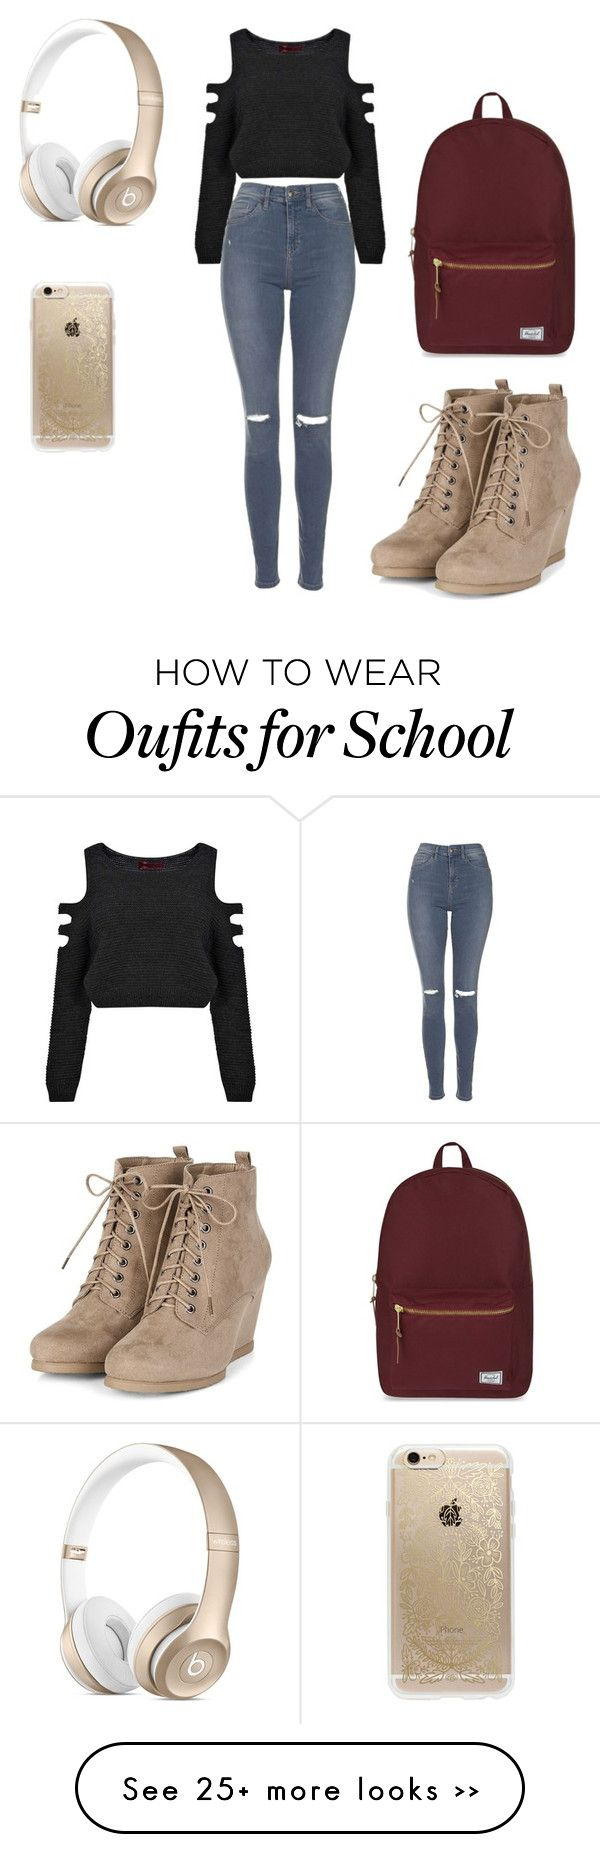 """""""Back to school 2015"""" by amber-de-bleeckere on Polyvore featuring Boohoo, Topshop, Herschel Supply Co. and Rifle Paper Co"""